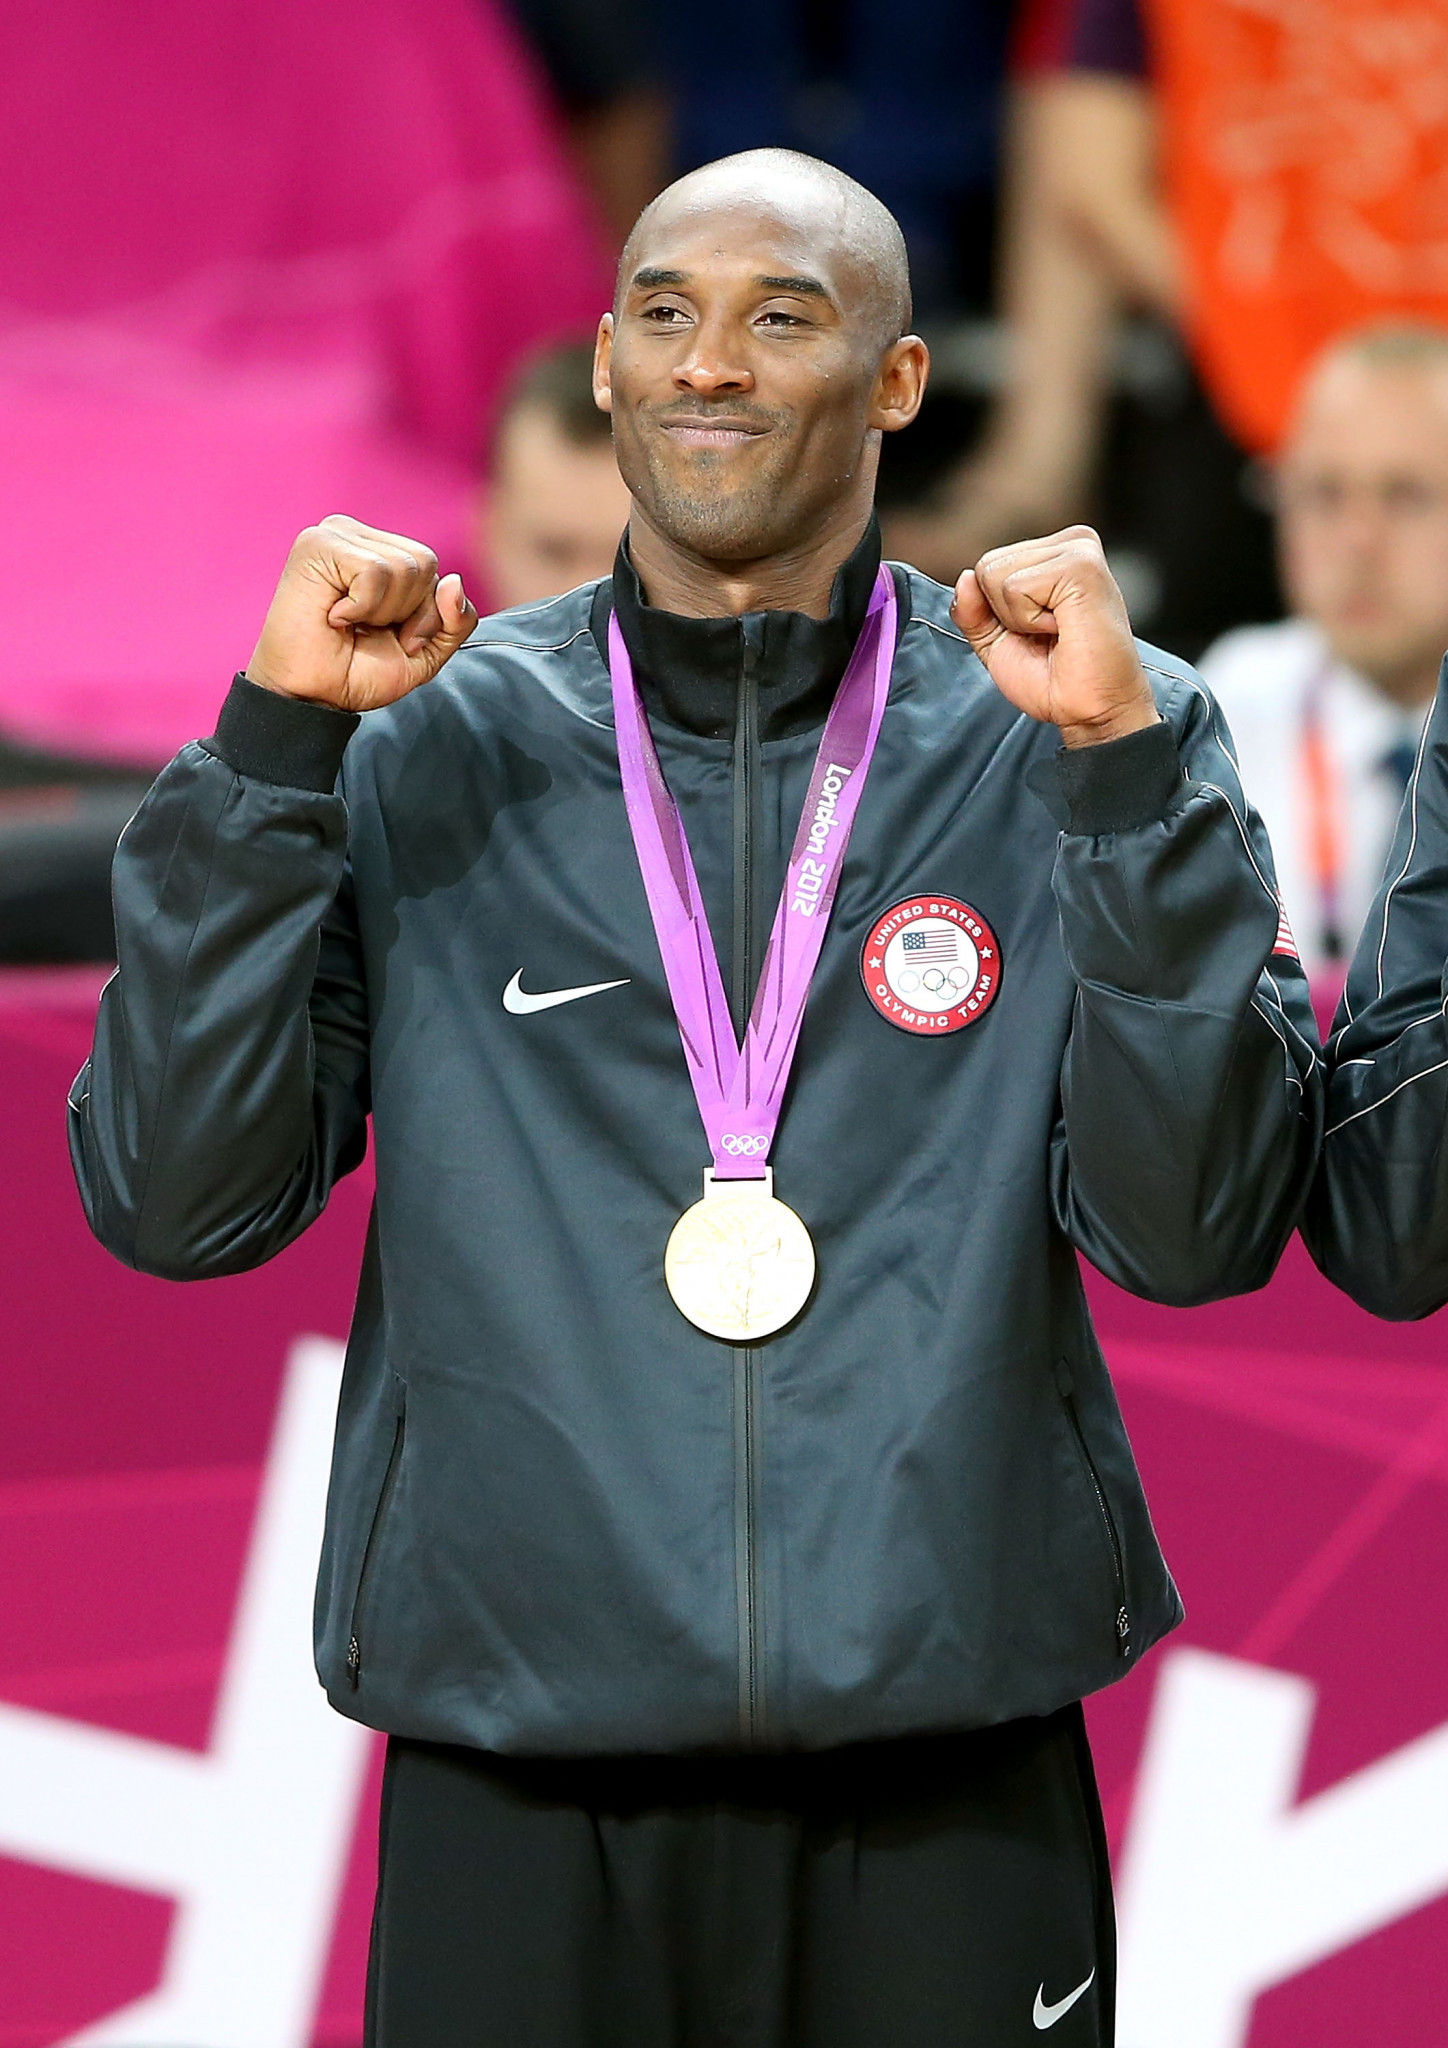 Kobe Bryant was a double Olympic champion, winning gold at Beijing 2008 and London 2012 ©Getty Images